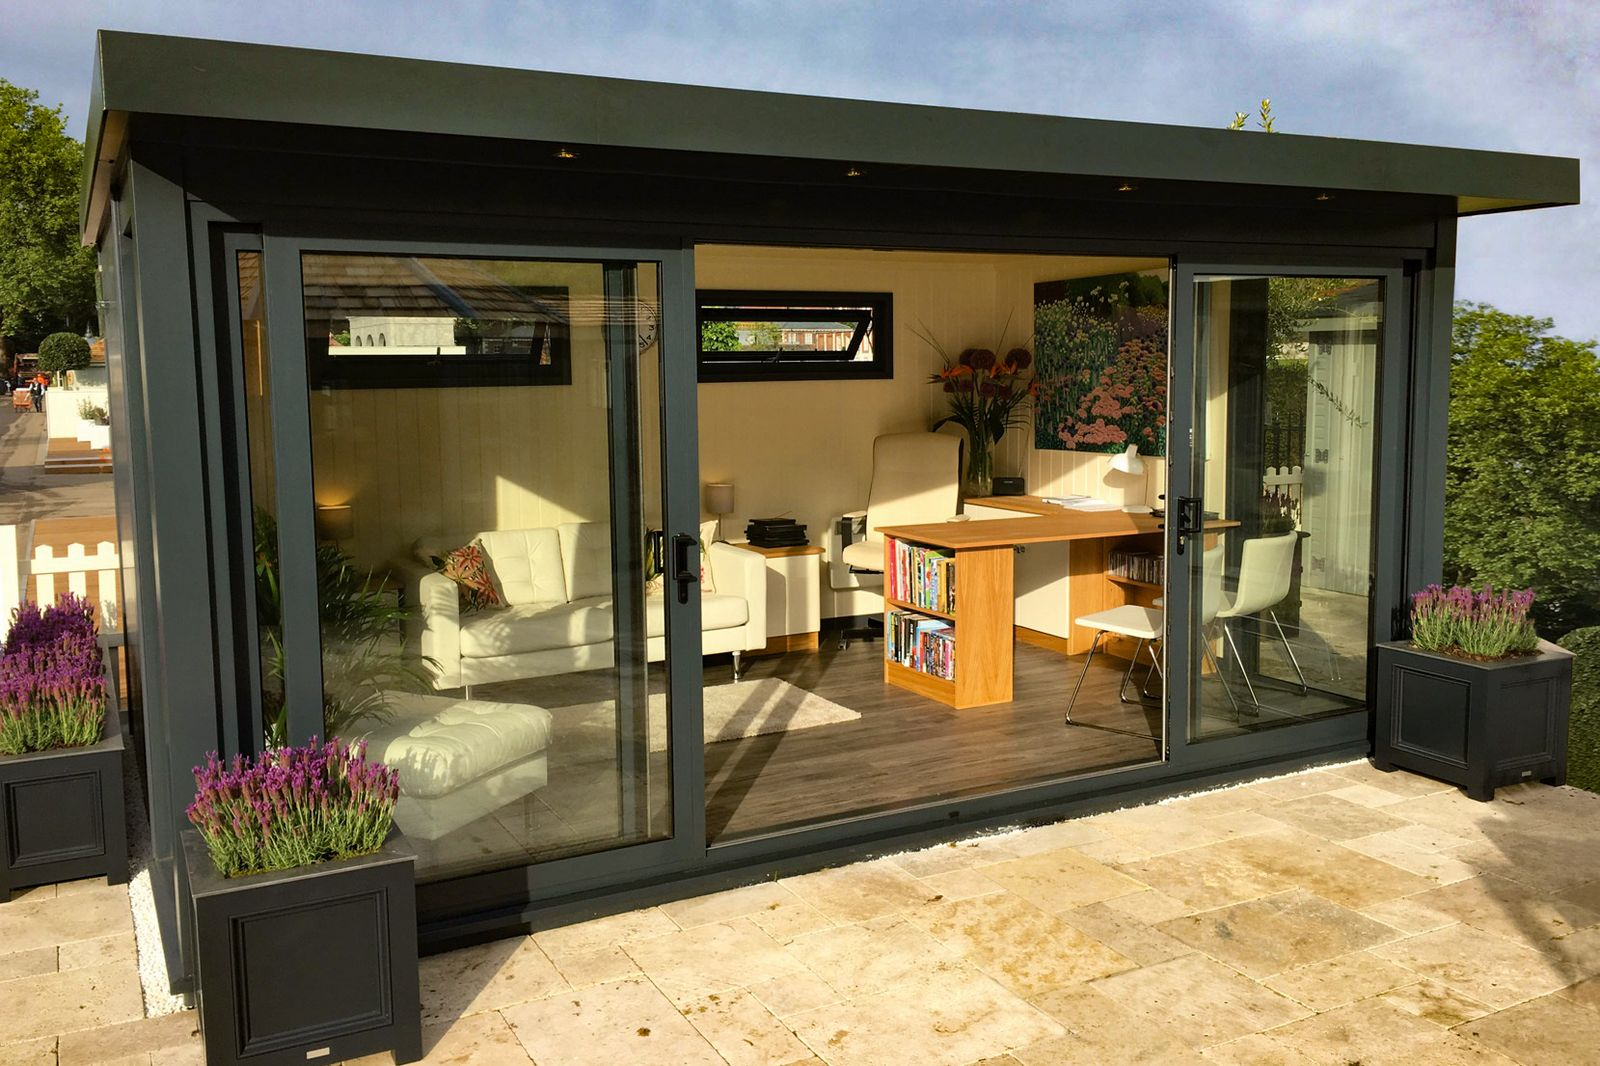 The Malvern Charford Garden Office under 2.5m in height